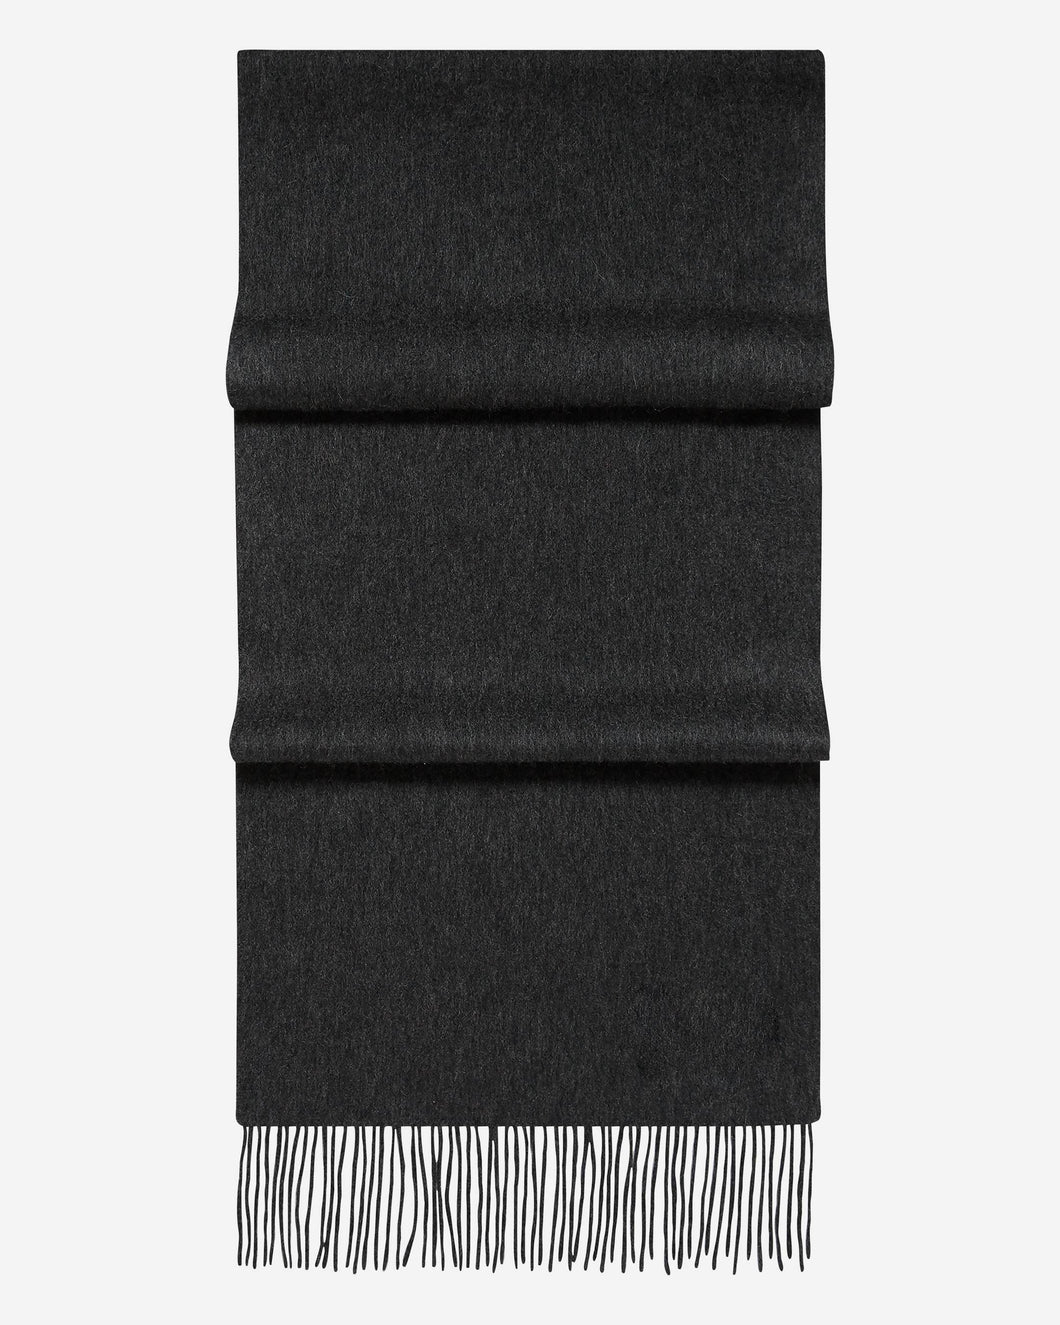 Woven Cashmere Scarf Dark Charcoal Grey